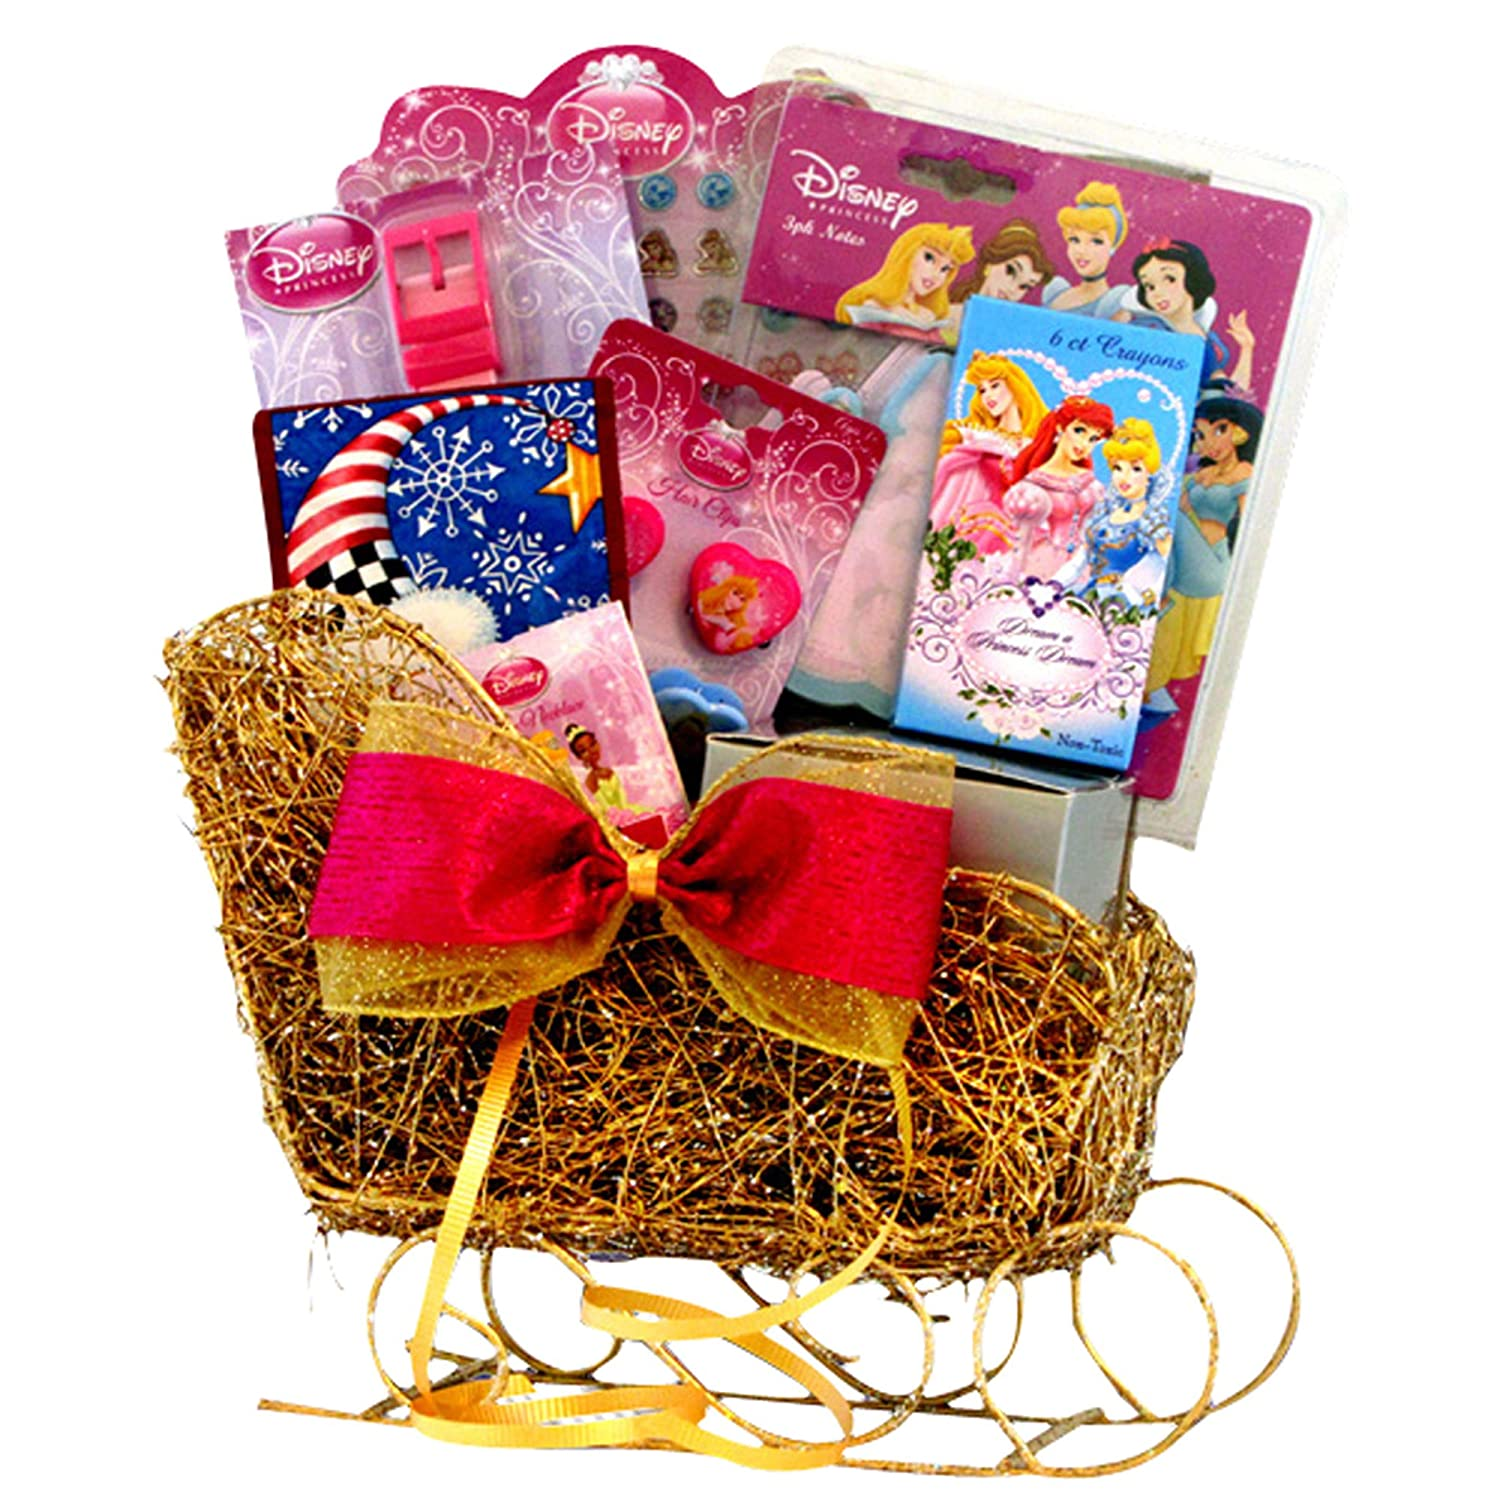 Amazon.com : Disney Princess Sleigh Valentine Gift Baskets - for ...